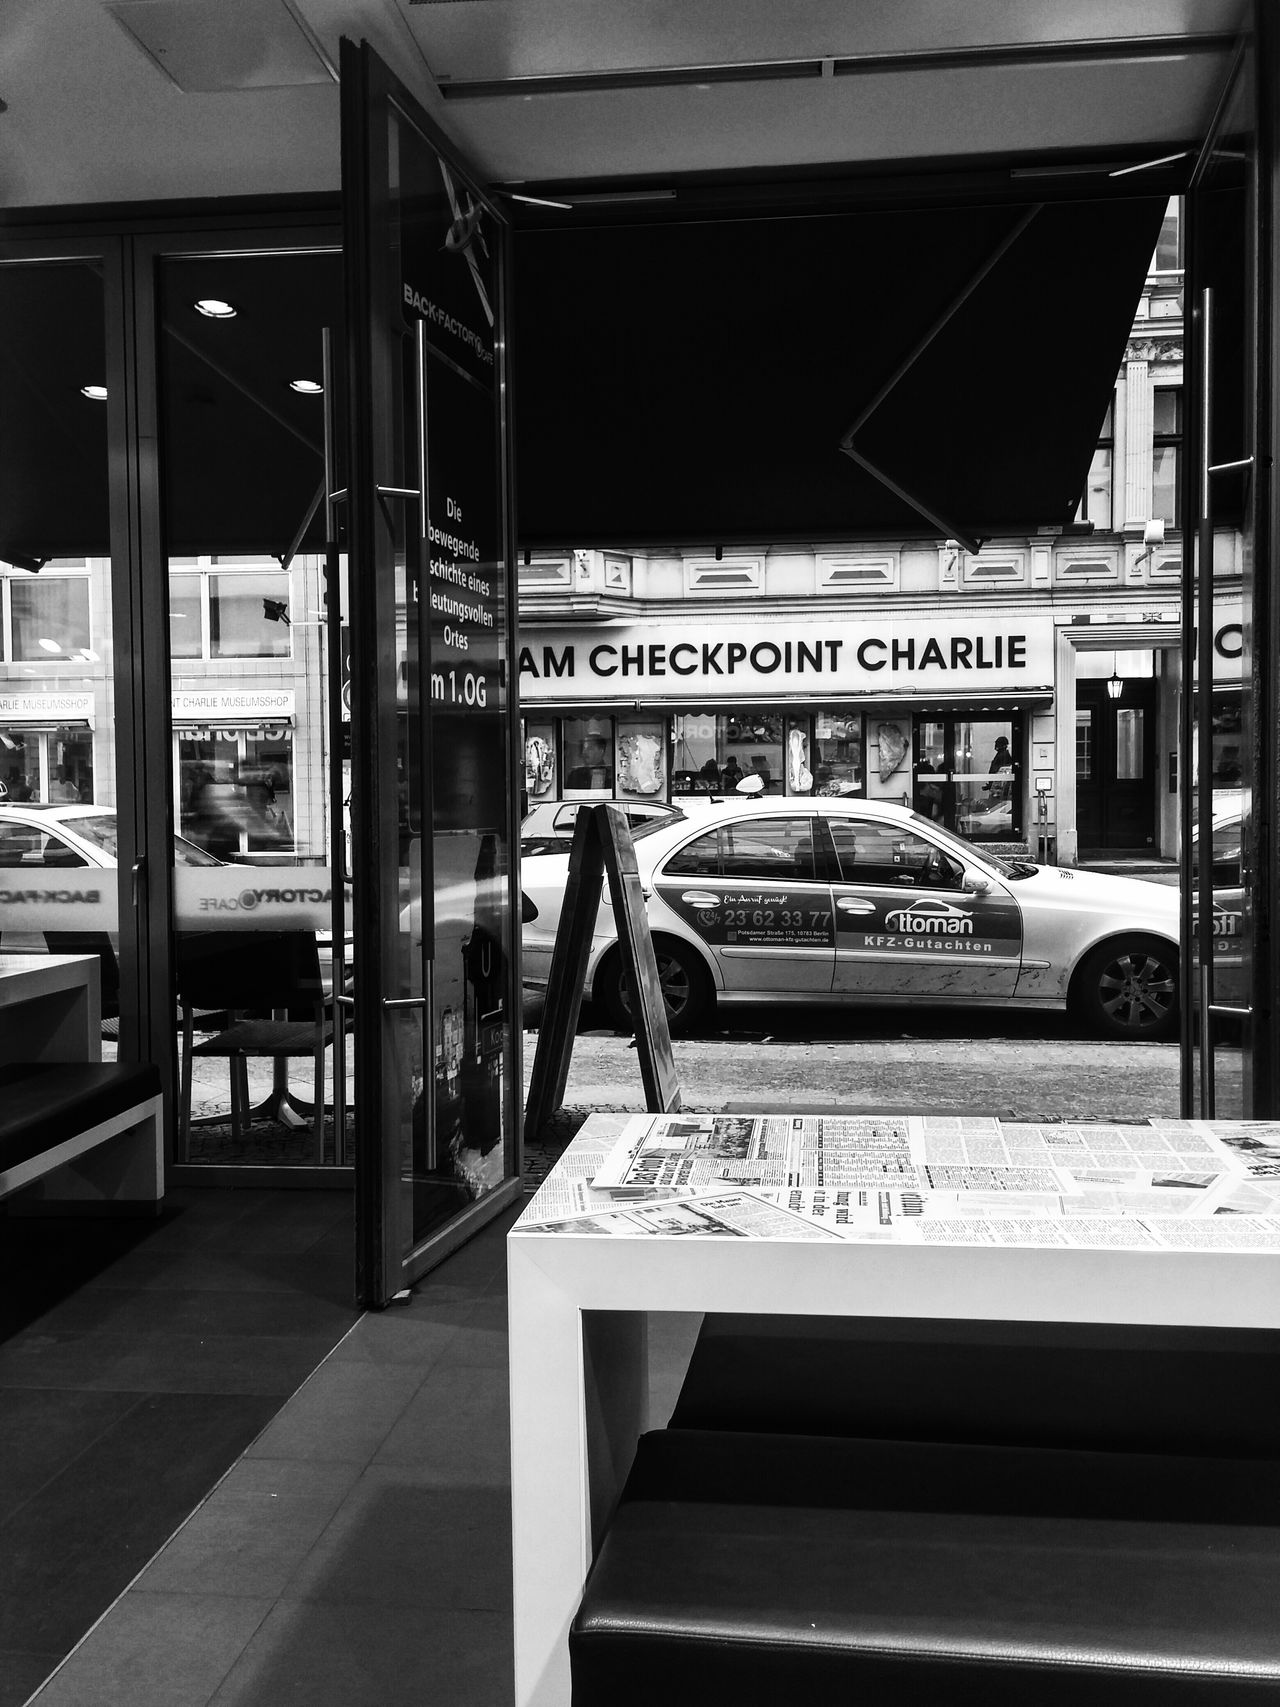 Checkpointcharlie Check This Out My Point Of View Blackandwhite Black And White Treveling Taking Photos Enjoying Life Hanging Out Hello World